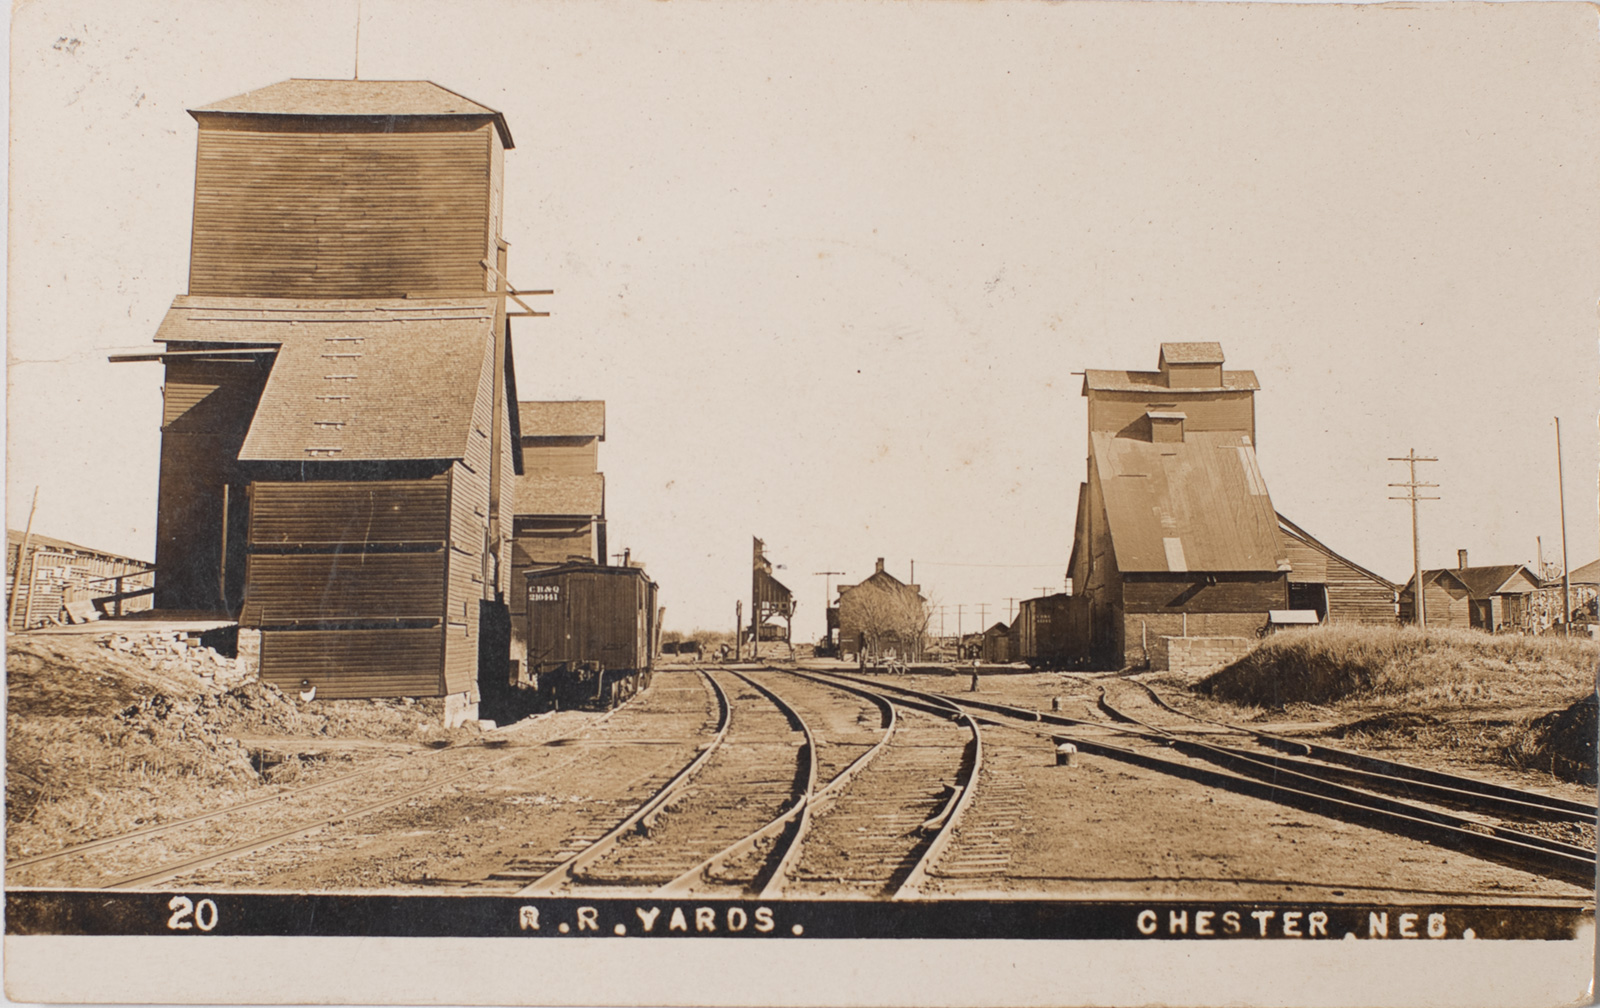 Chester Nebraska Burlington Depot 1910 Image